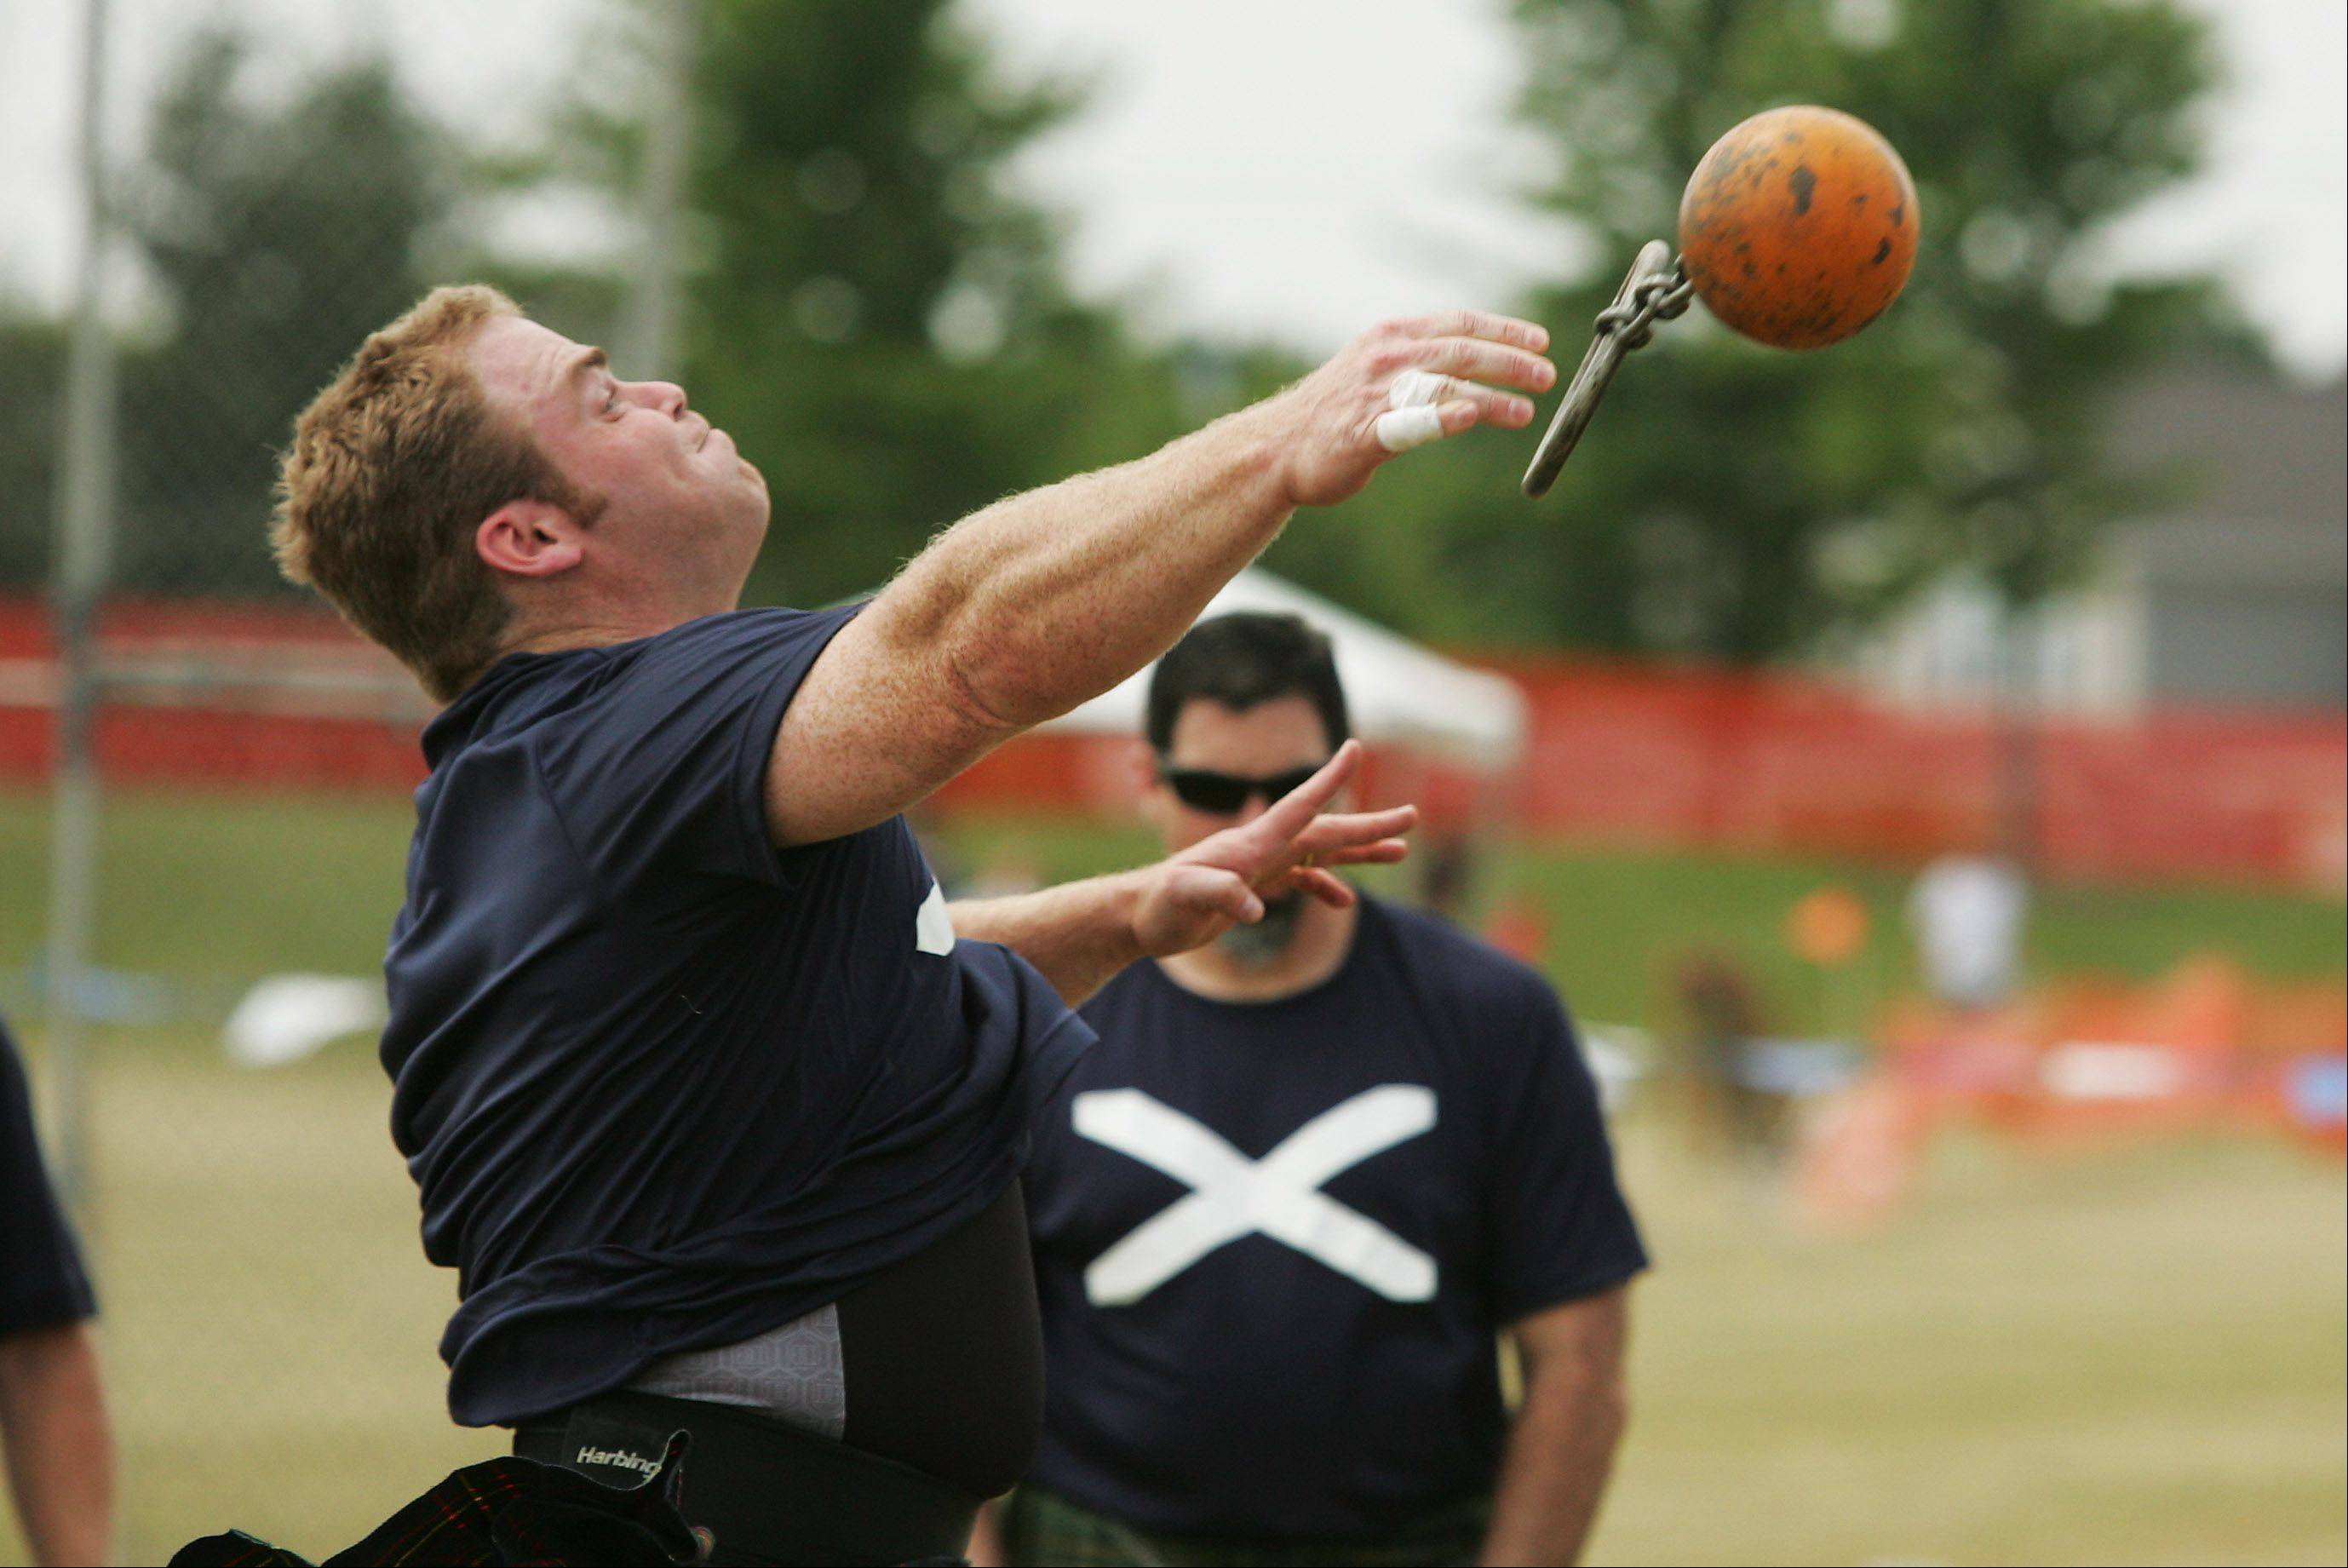 Daniel McKim of Kansas City, Mo., finishes second in the 28-pound weight throw for distance event Saturday during the Illinois St. Andrew Society Scottish Festival and Highland Games at Hamilton Lakes in Itasca.